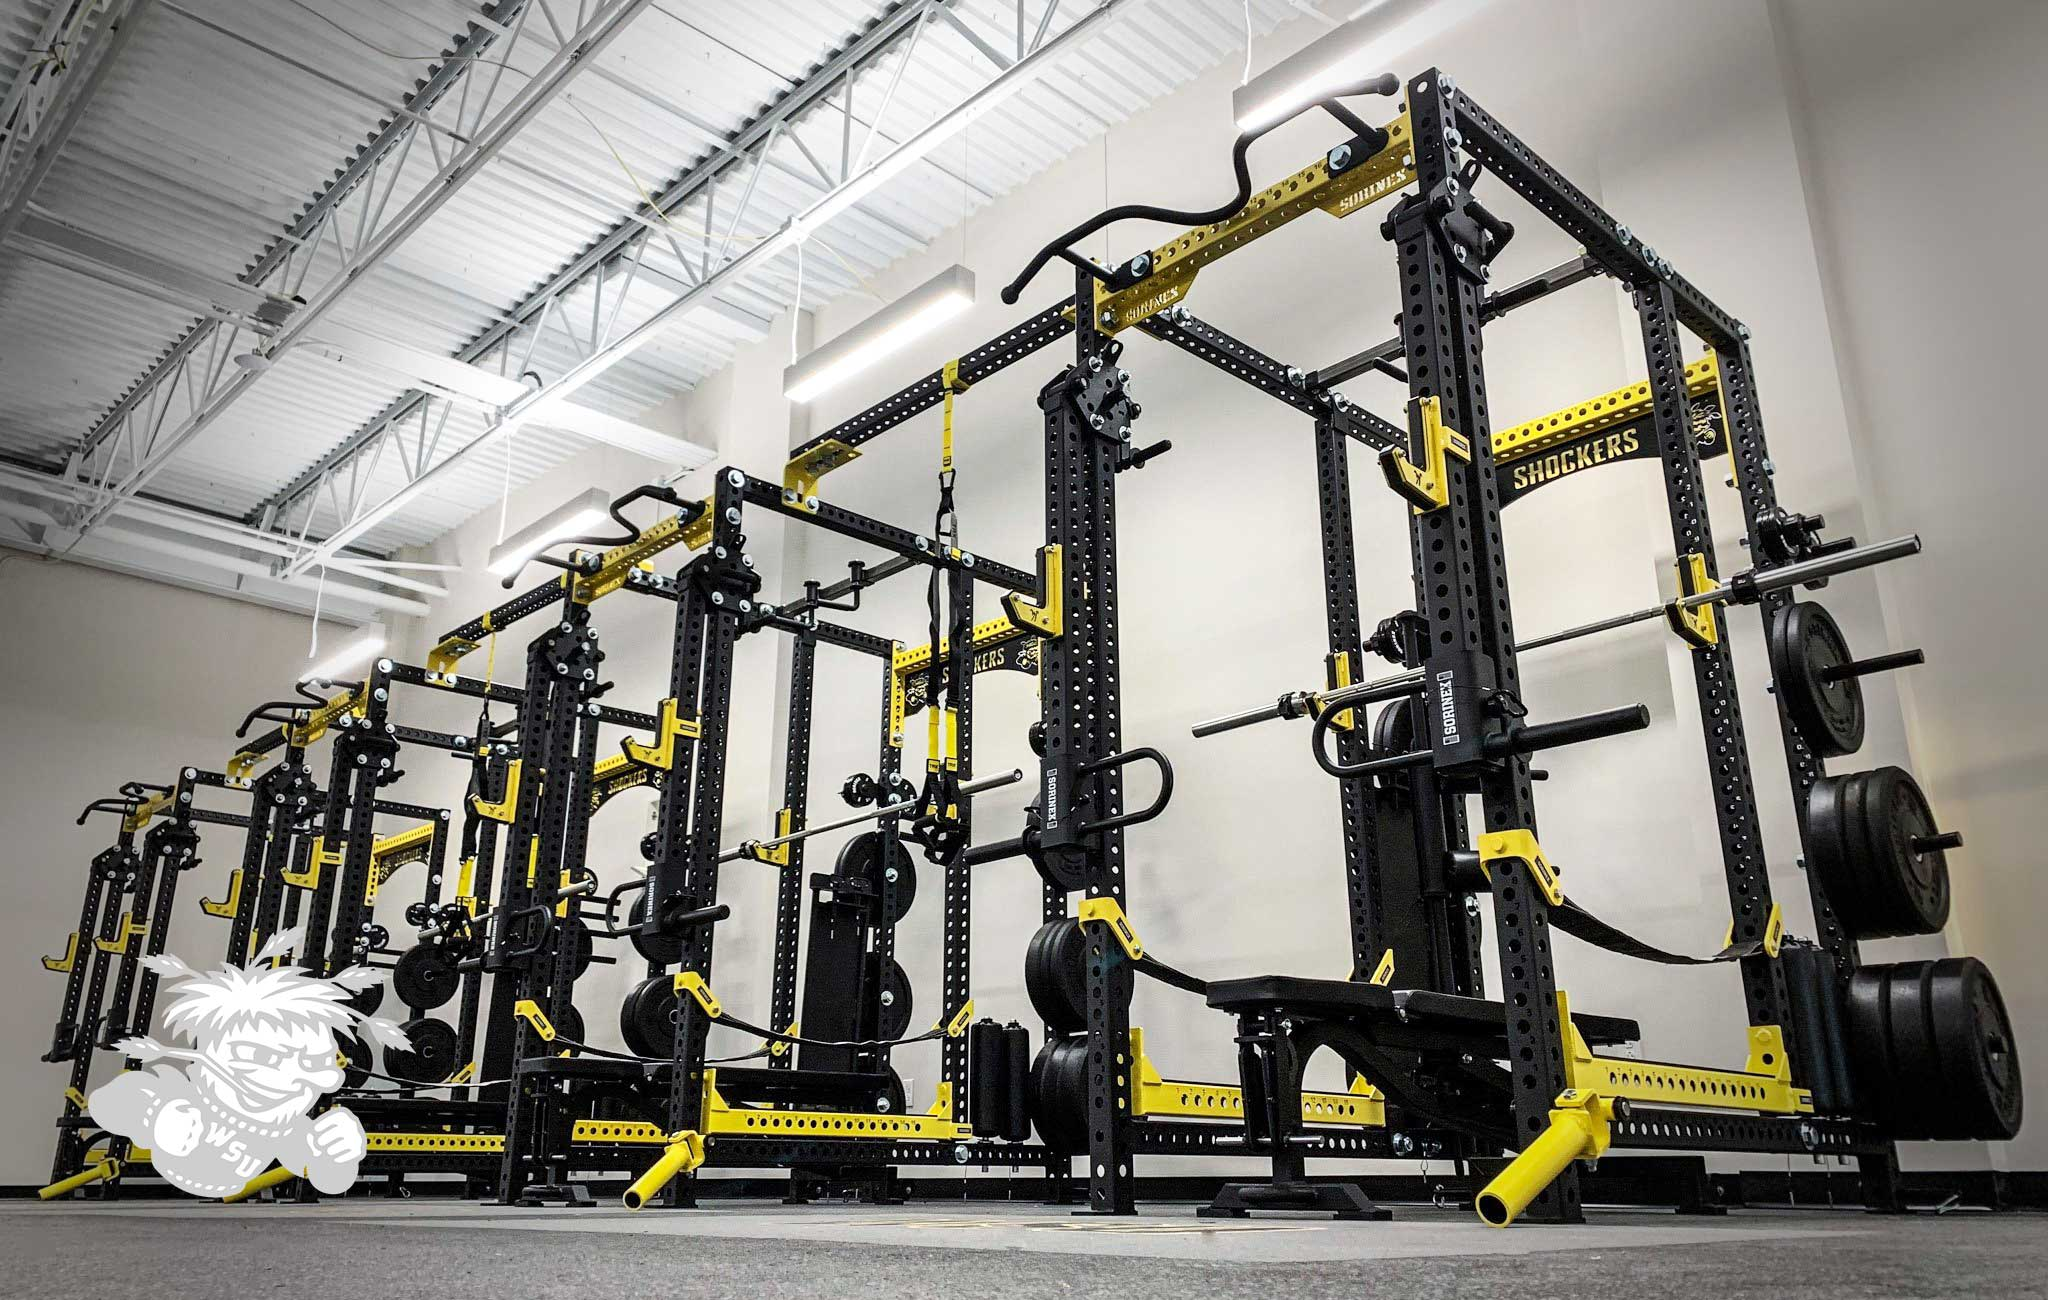 WICHITA STATE UNIVERSITY Sorinex strength and conditioning facility